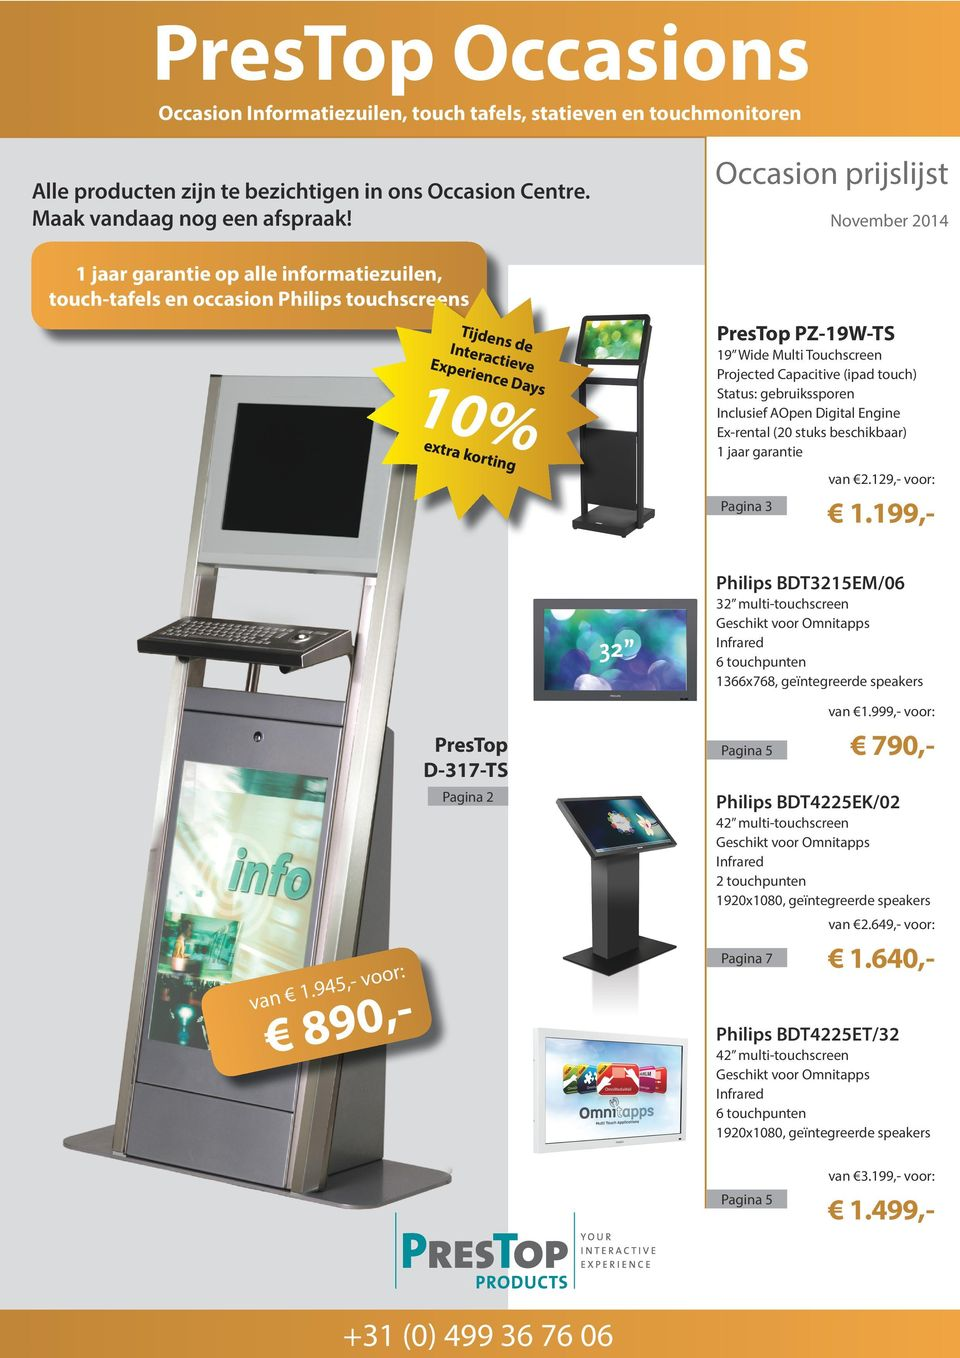 PZ-19W-TS 19 Wide Multi Touchscreen Projected Capacitive (ipad touch) Status: gebruikssporen Inclusief AOpen Digital Engine Ex-rental (20 stuks beschikbaar) 1 jaar garantie van 2.129,- Pagina 3 1.